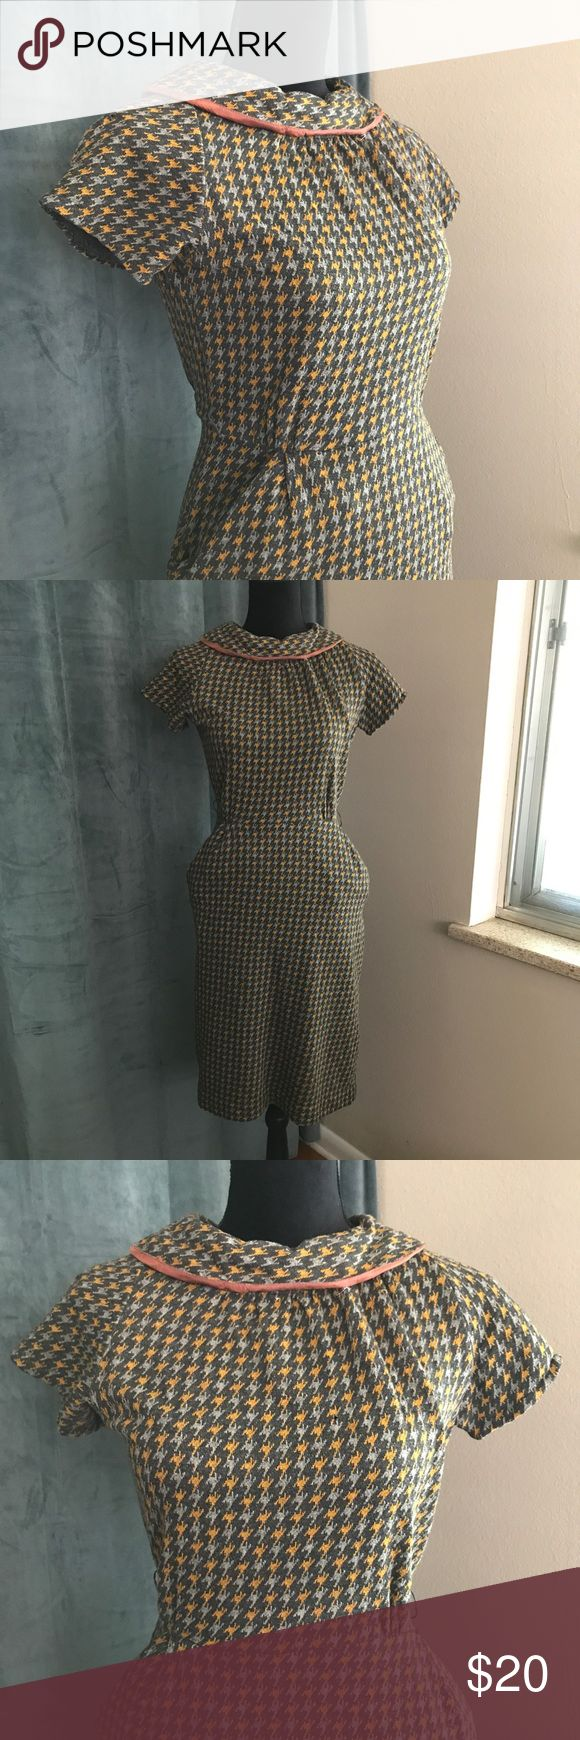 """Vintage 50s Grey Houndstooth Day Dress M Vintage 50s grey and gold houndstooth woven day dress with pockets.  Condition: There is a pinhole in the front of the bodice (see photo). Normally I wouldn't sell this but it would make a great Mad Men costume piece or could be repaired. It's too cute to send to thrift. Other than that, condition is great.  Waist: 30"""" Bust: 38"""" Hips: 40"""" Length (from shoulder): 39"""" Vintage Dresses Midi"""